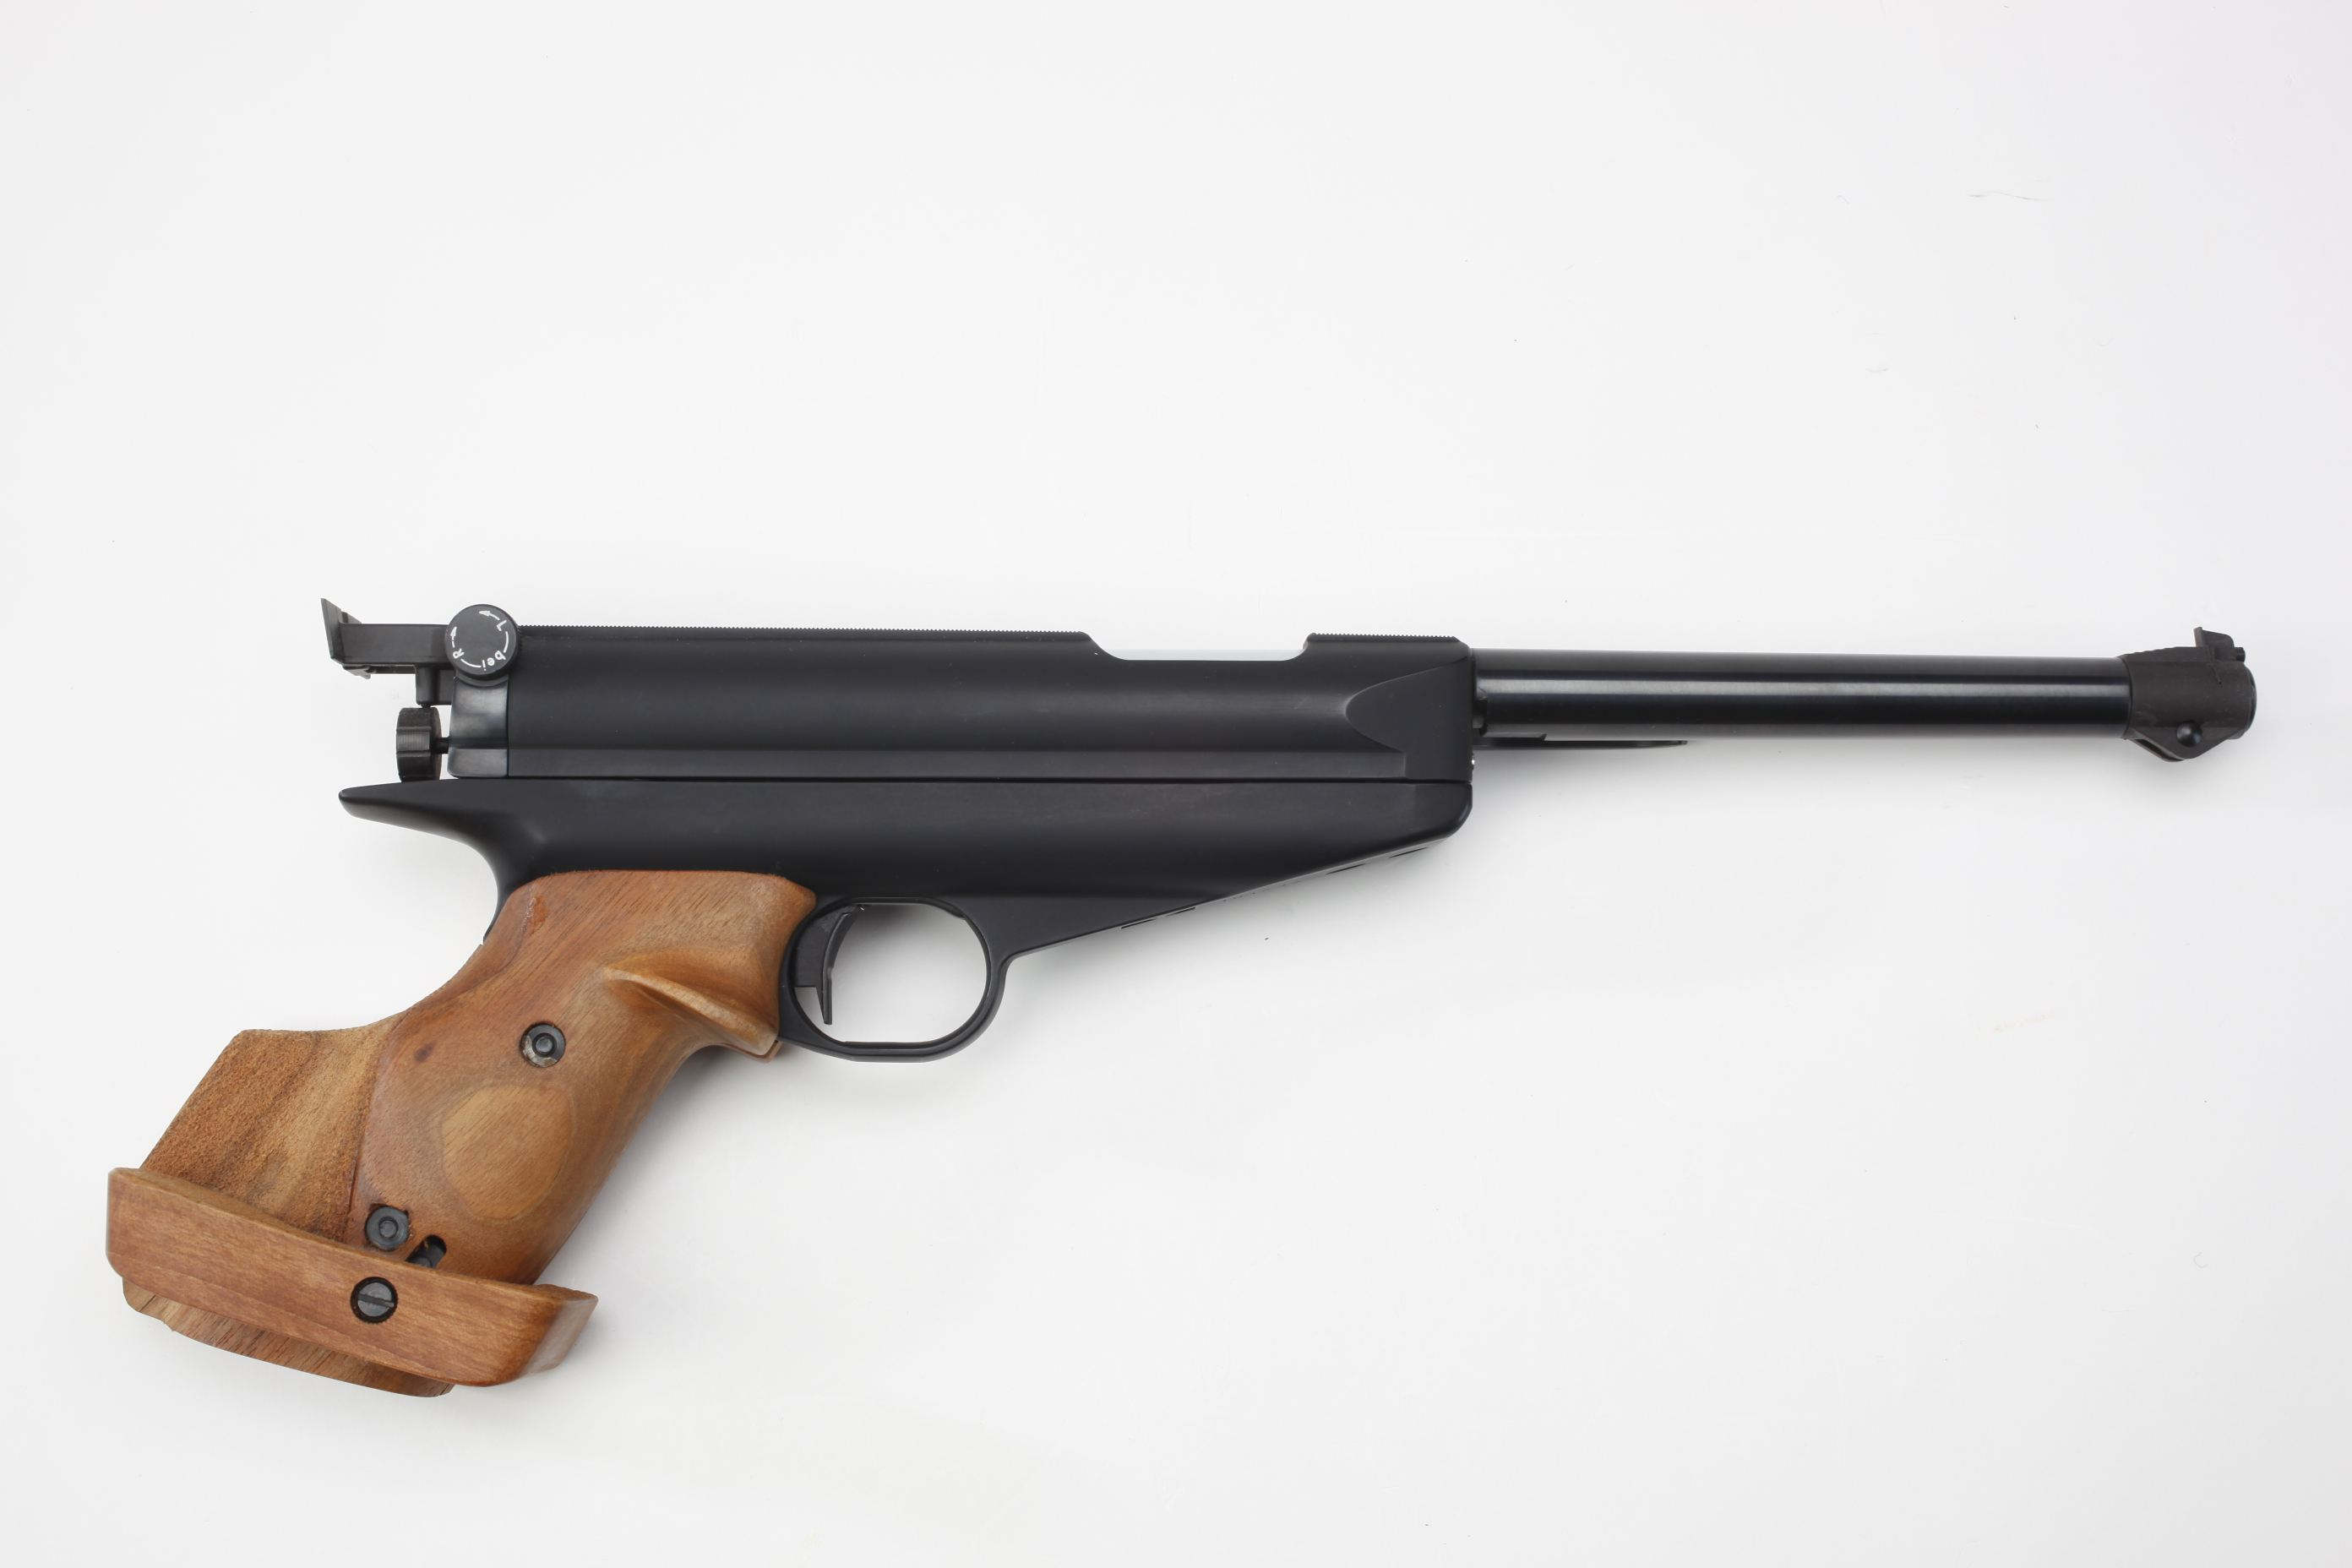 Feinwerkbau Model 65 Air Pistol